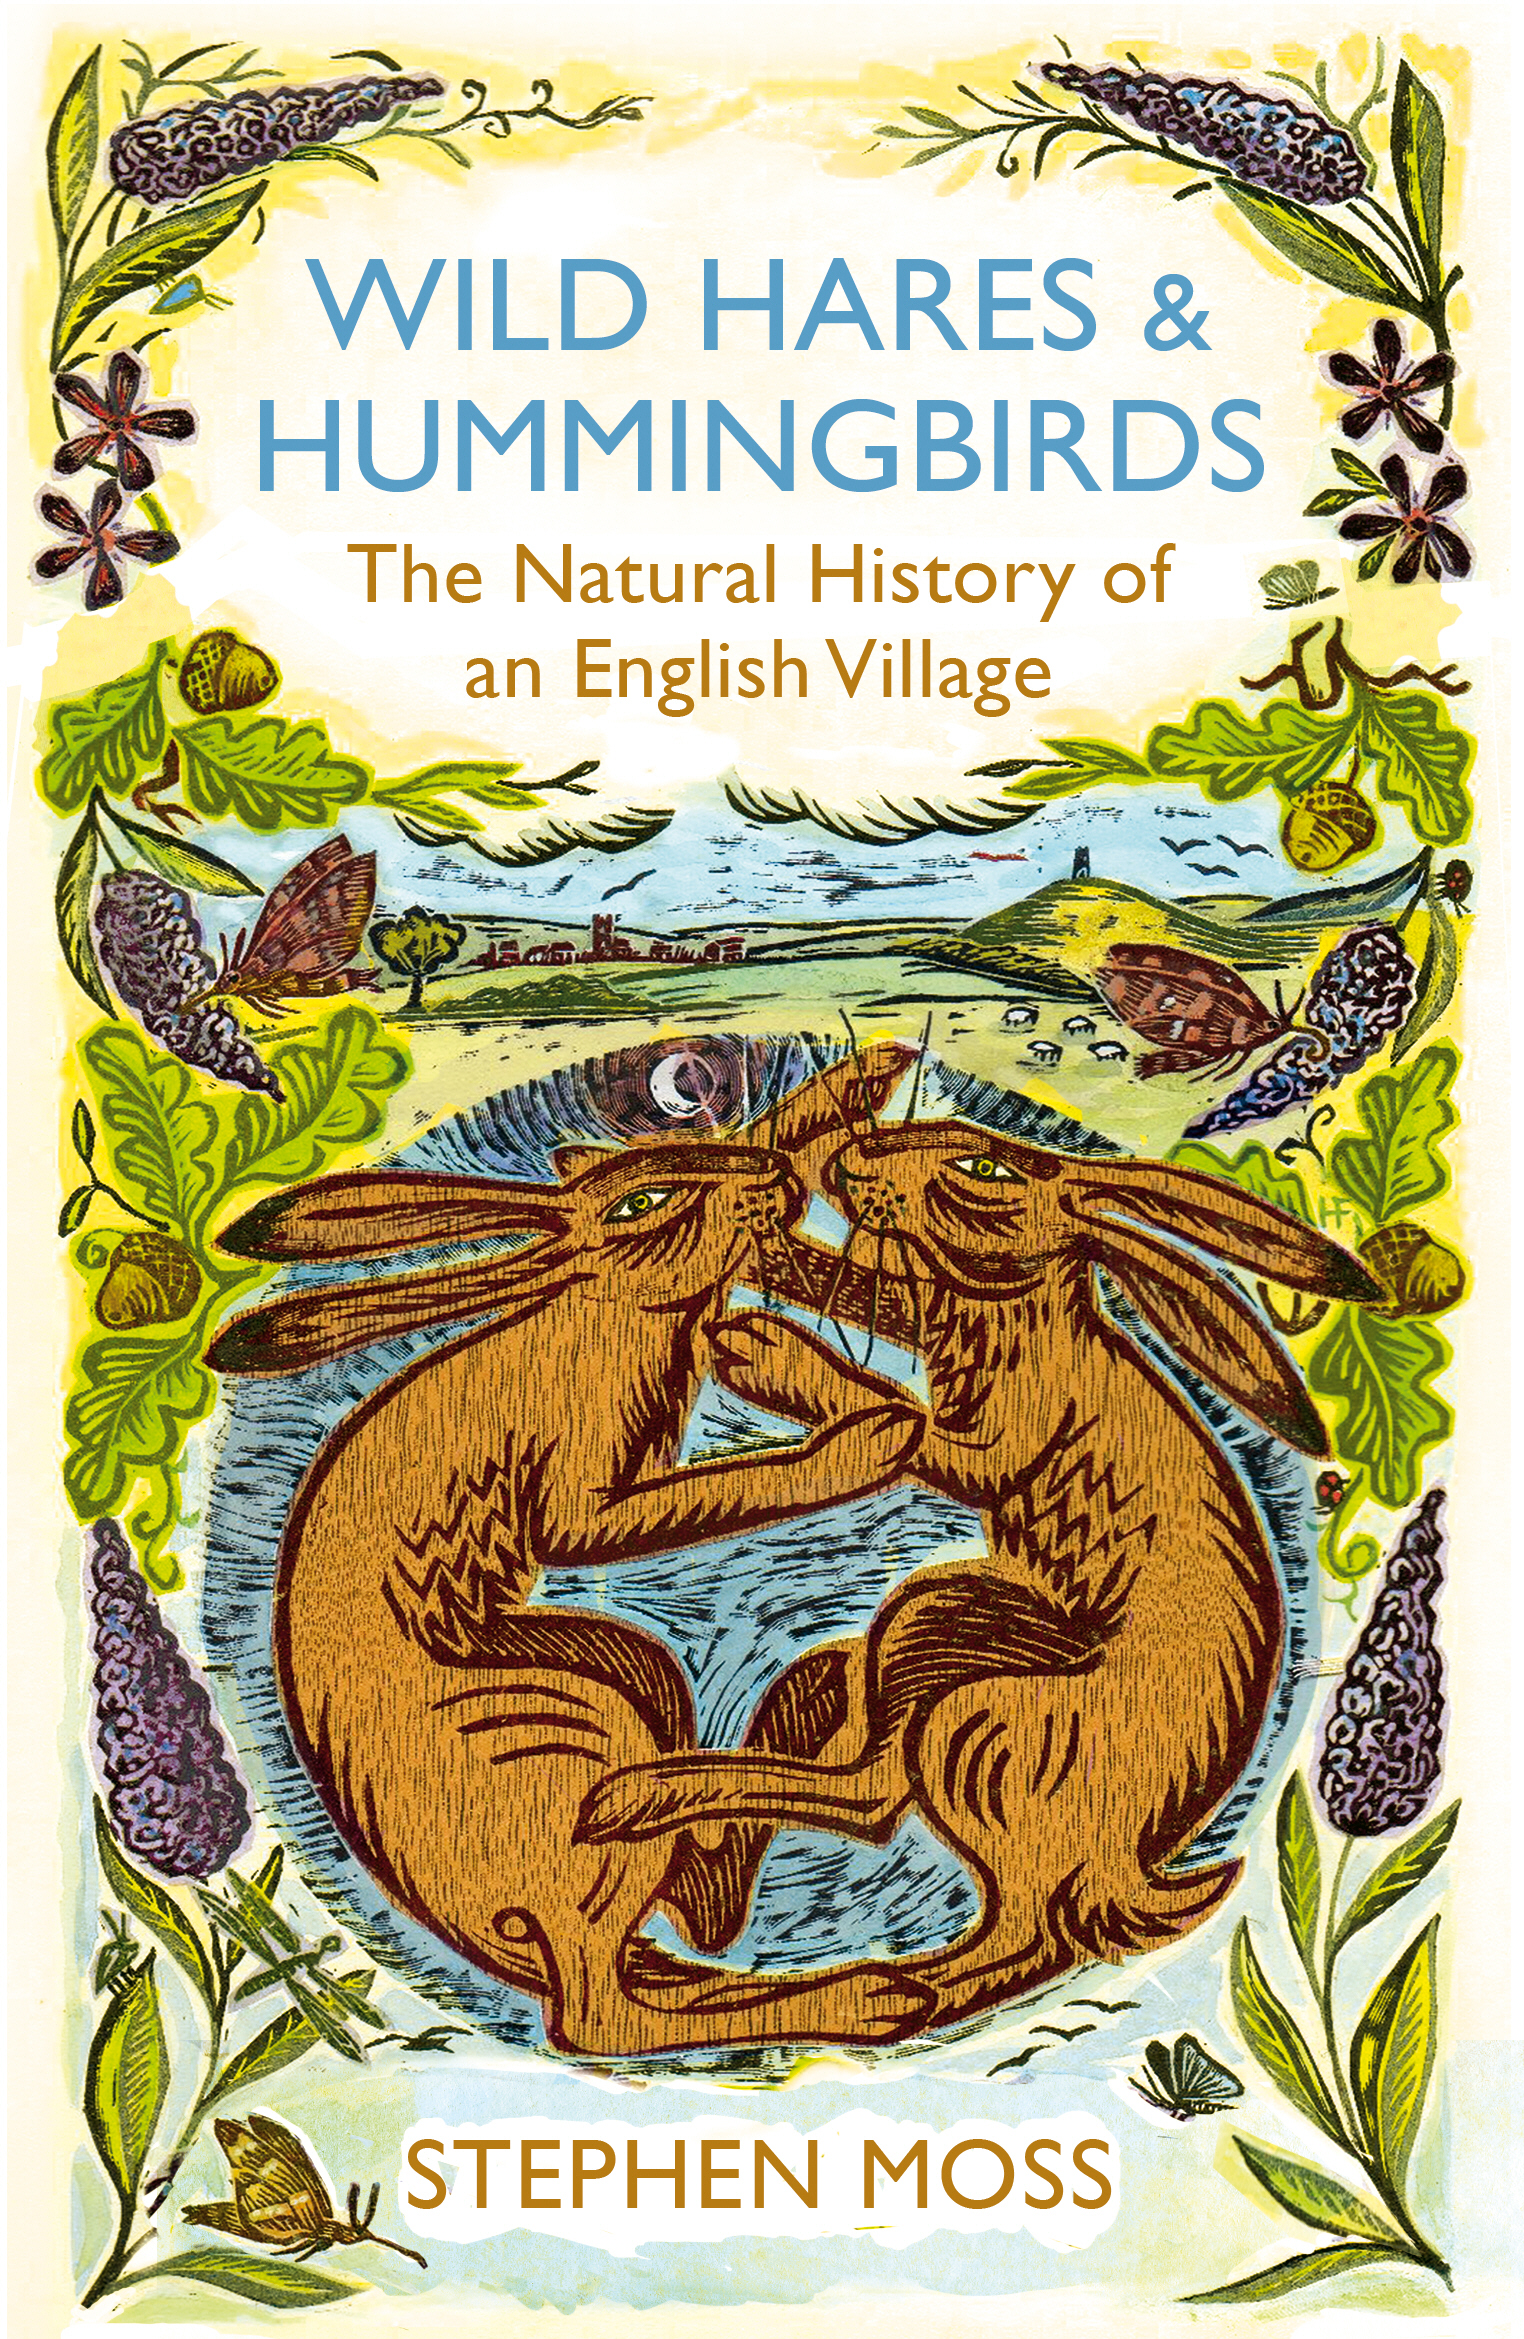 Wild Hares and Hummingbirds The Natural History of an English Village